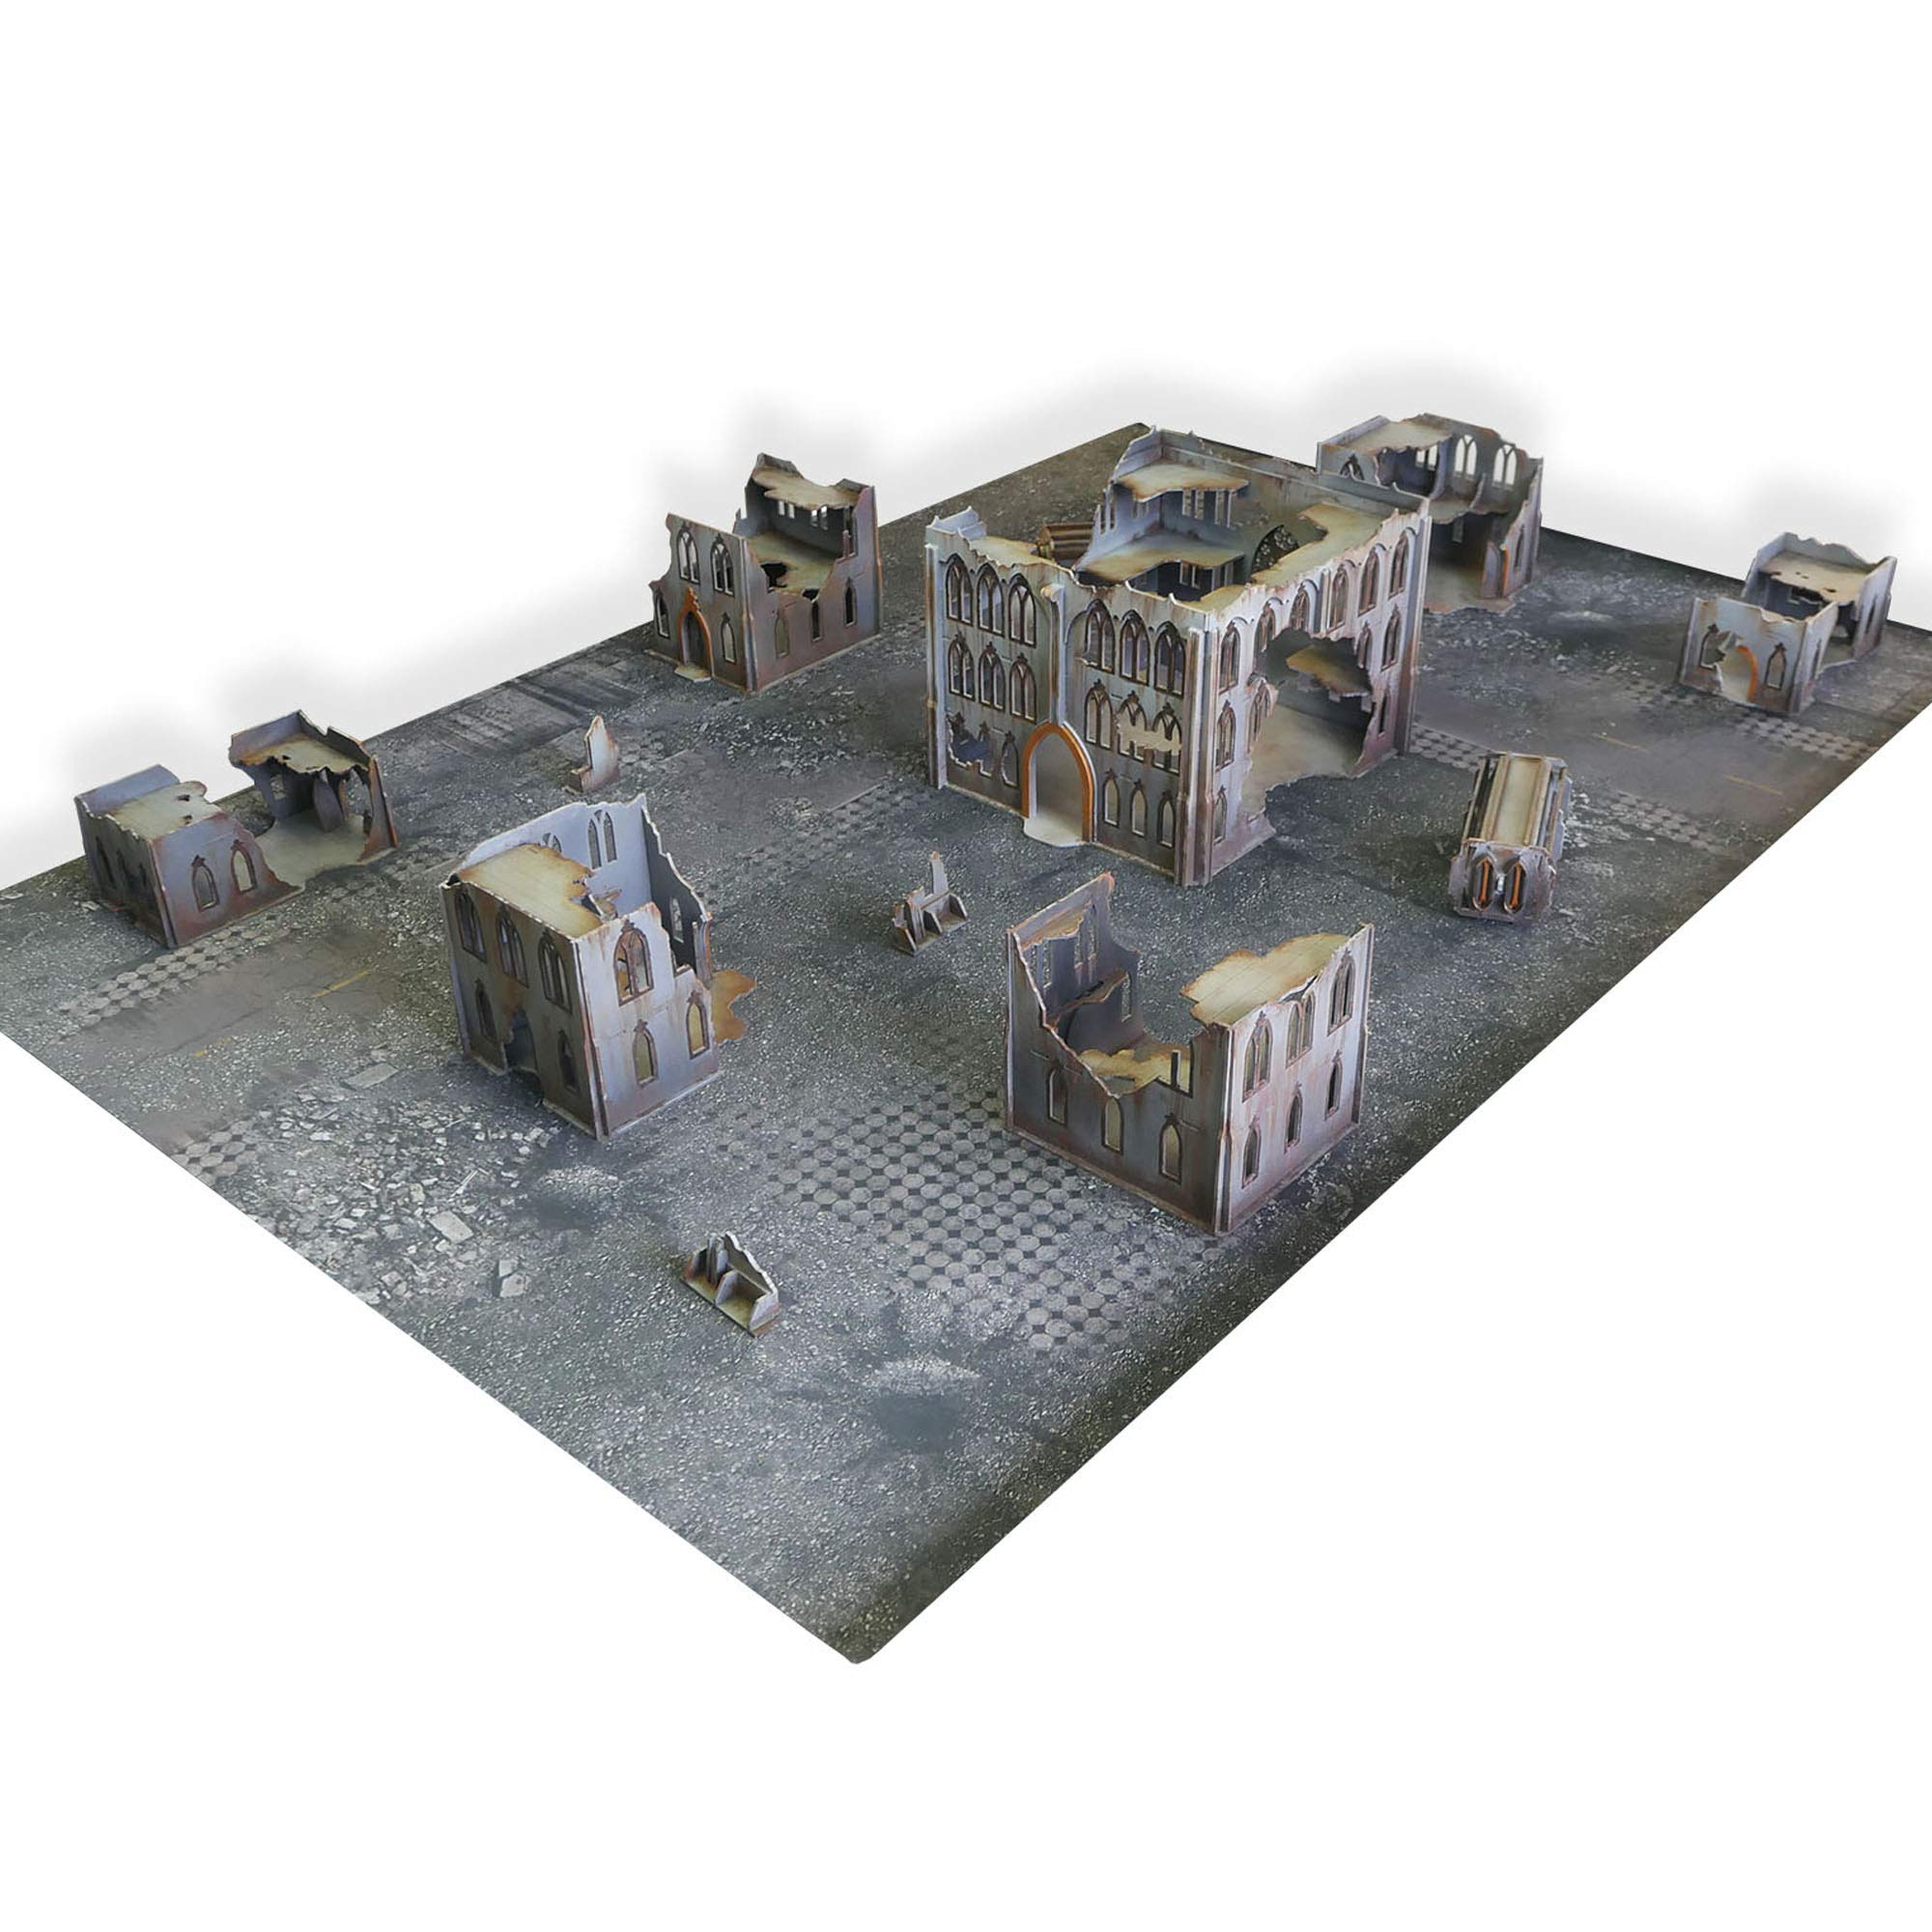 Frontline Gaming - ITC Terrain - Gothic Ruins ITC Standard Set with Mat- Tabletop Miniatures Wargame 28mm Scenery Terrain